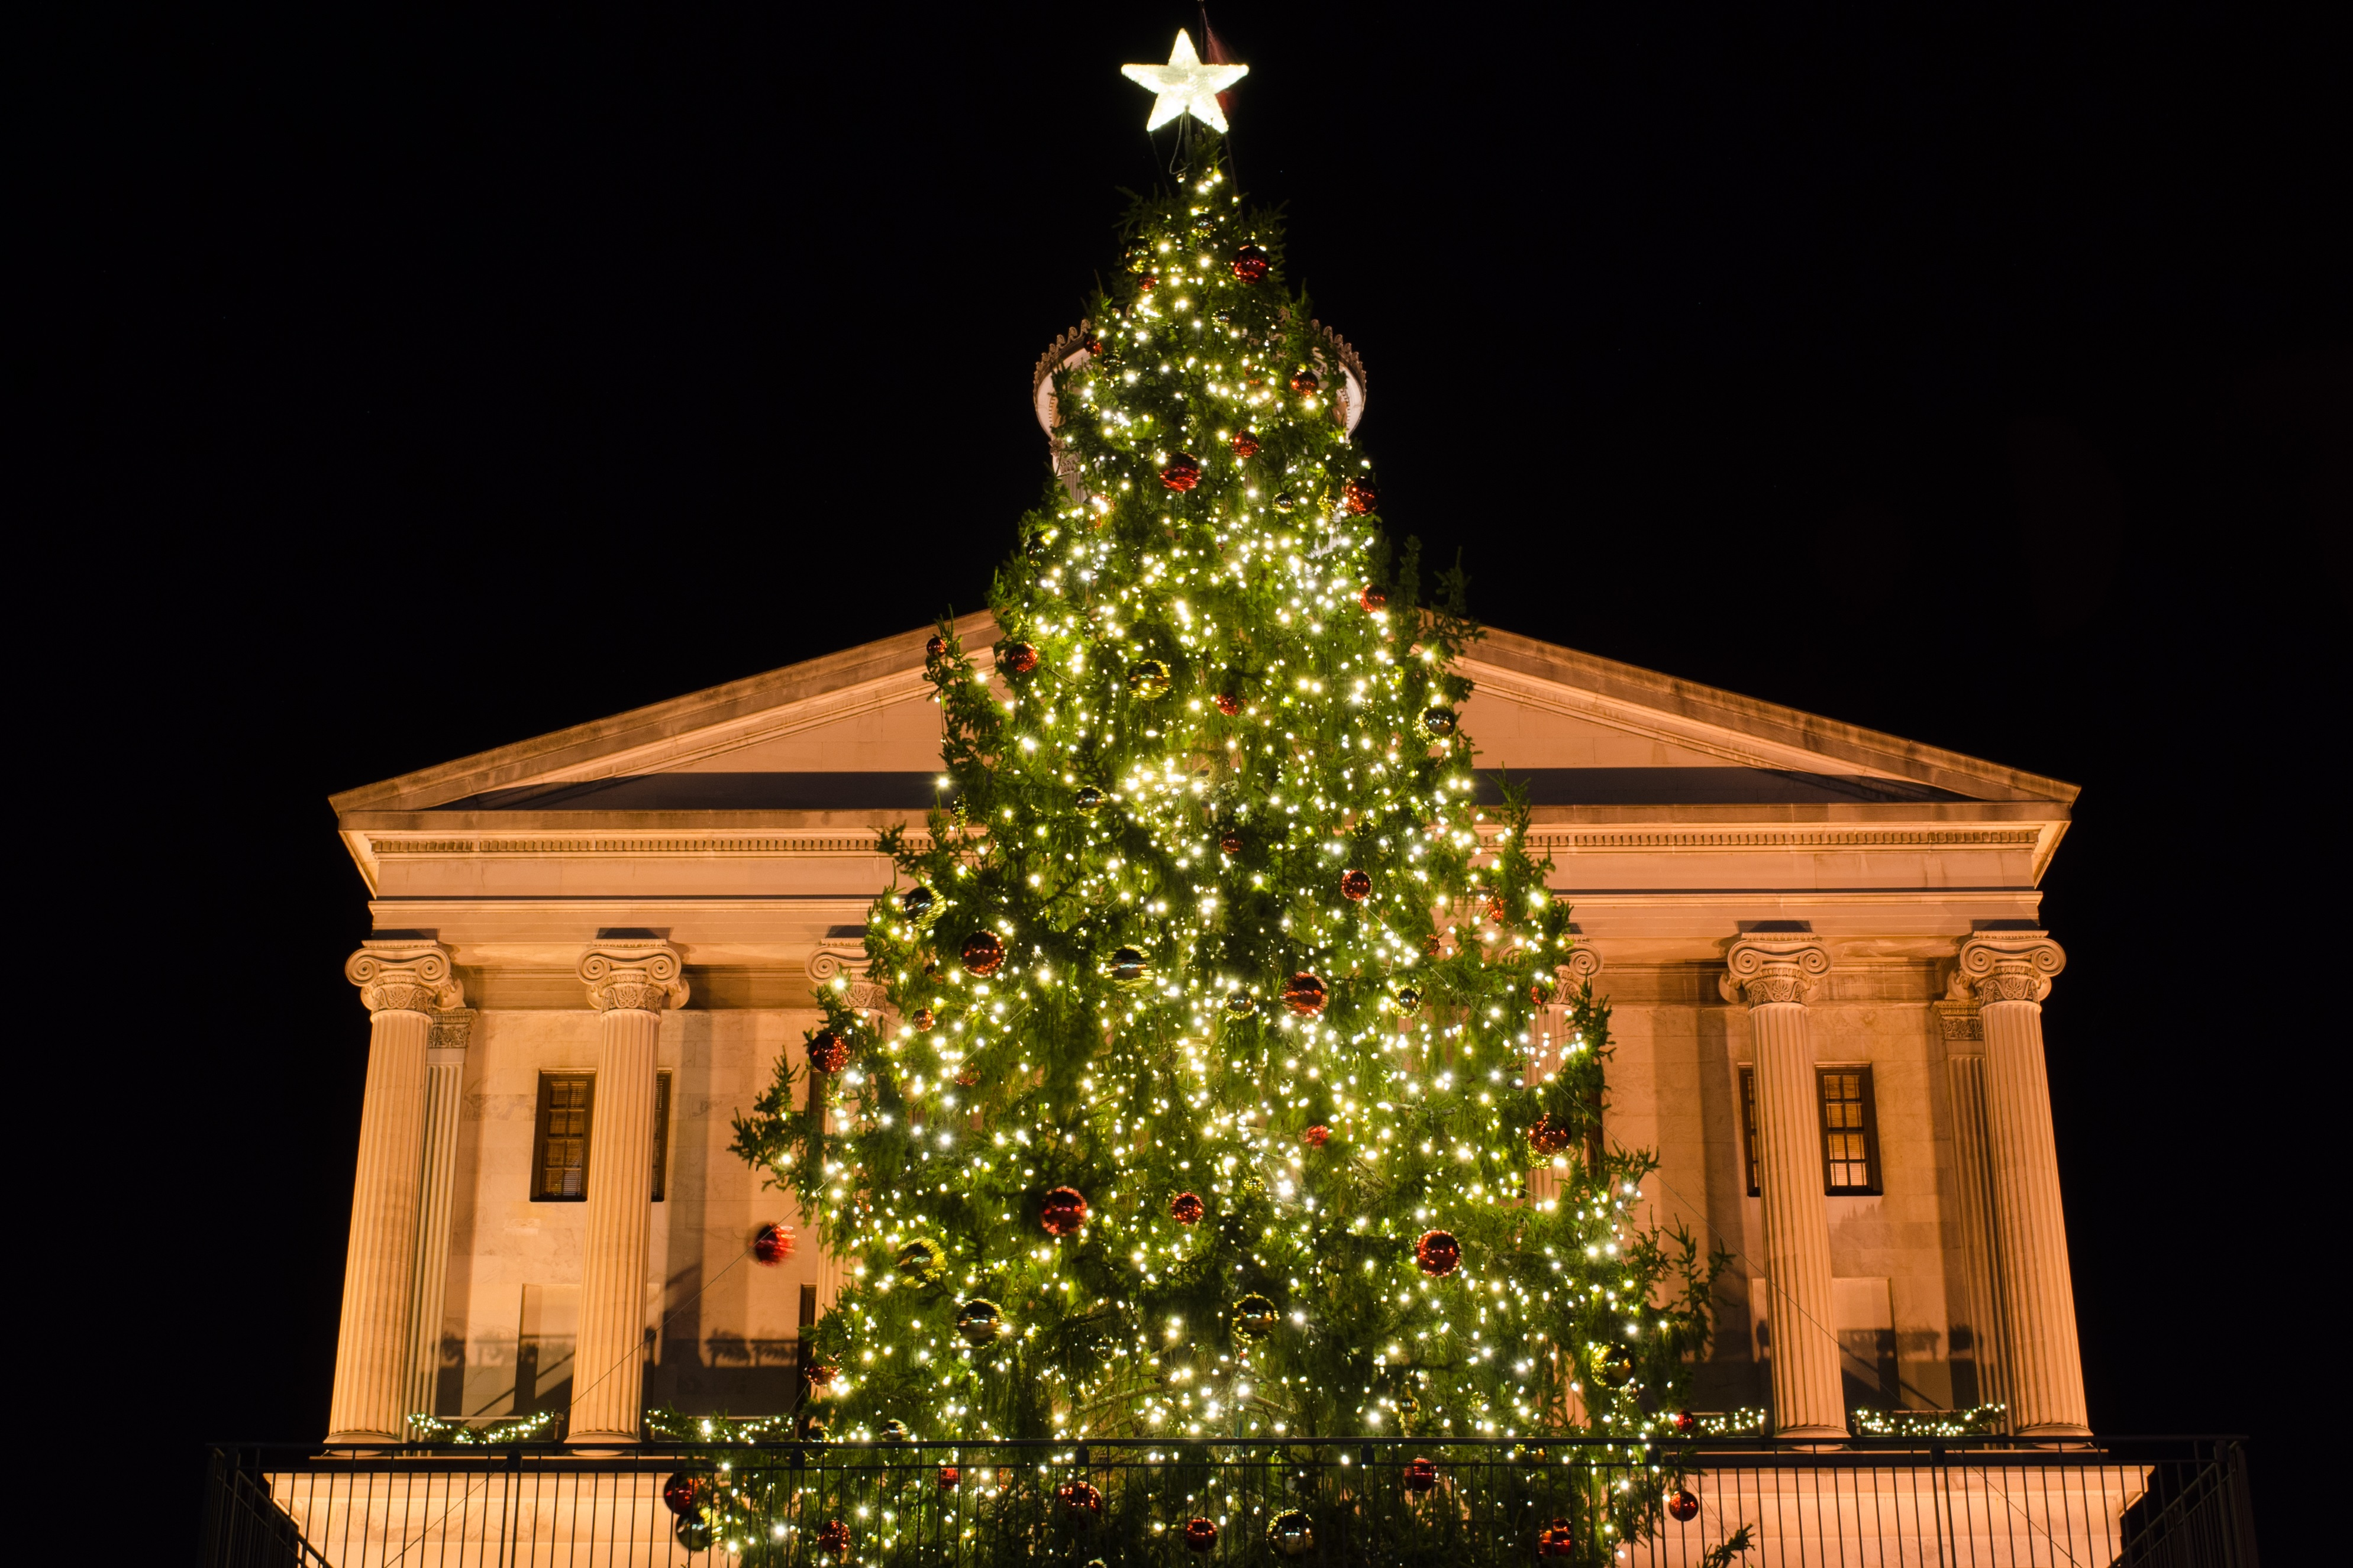 Nashville holiday outdoor lighting we are the nashville areas top outdoor lighting provider because outdoor lighting is all we do we specialize in landscape lighting architectural facade aloadofball Choice Image